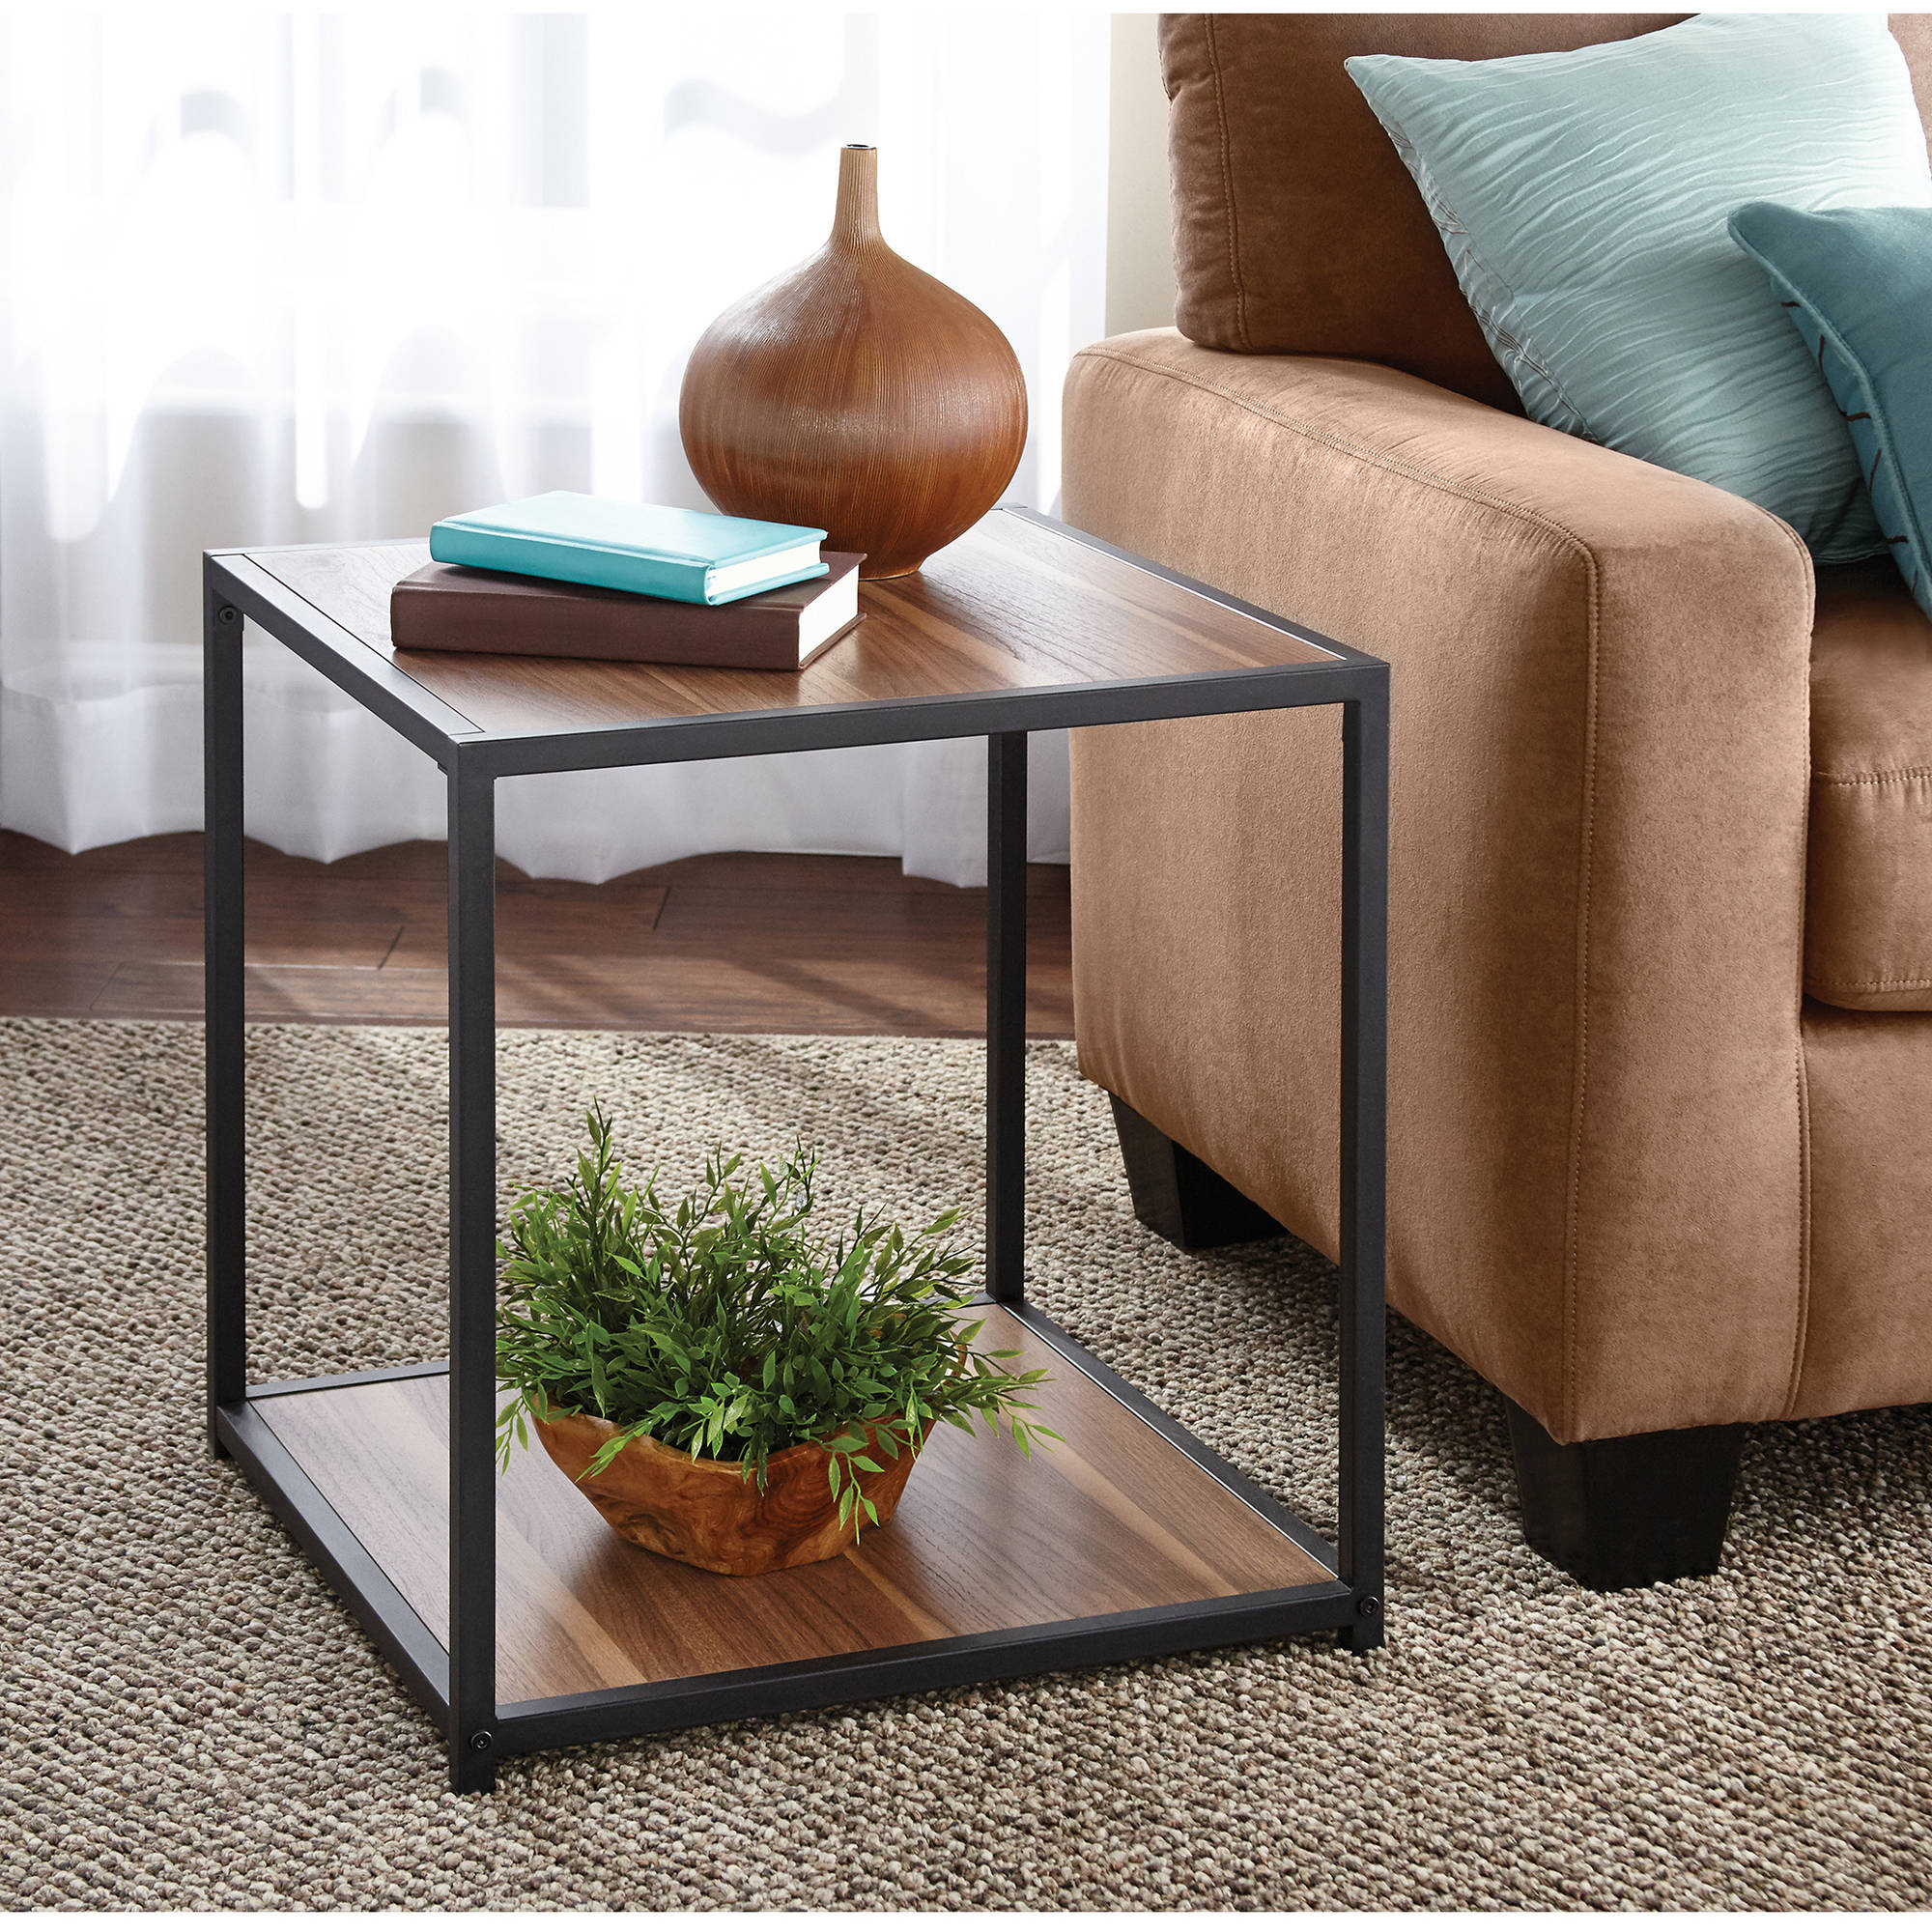 mainstays metro side table multiple finishes room essentials metal patio accent cast aluminum set mustard rug clear lucite desk home goods runners exterior miniature lamps antique